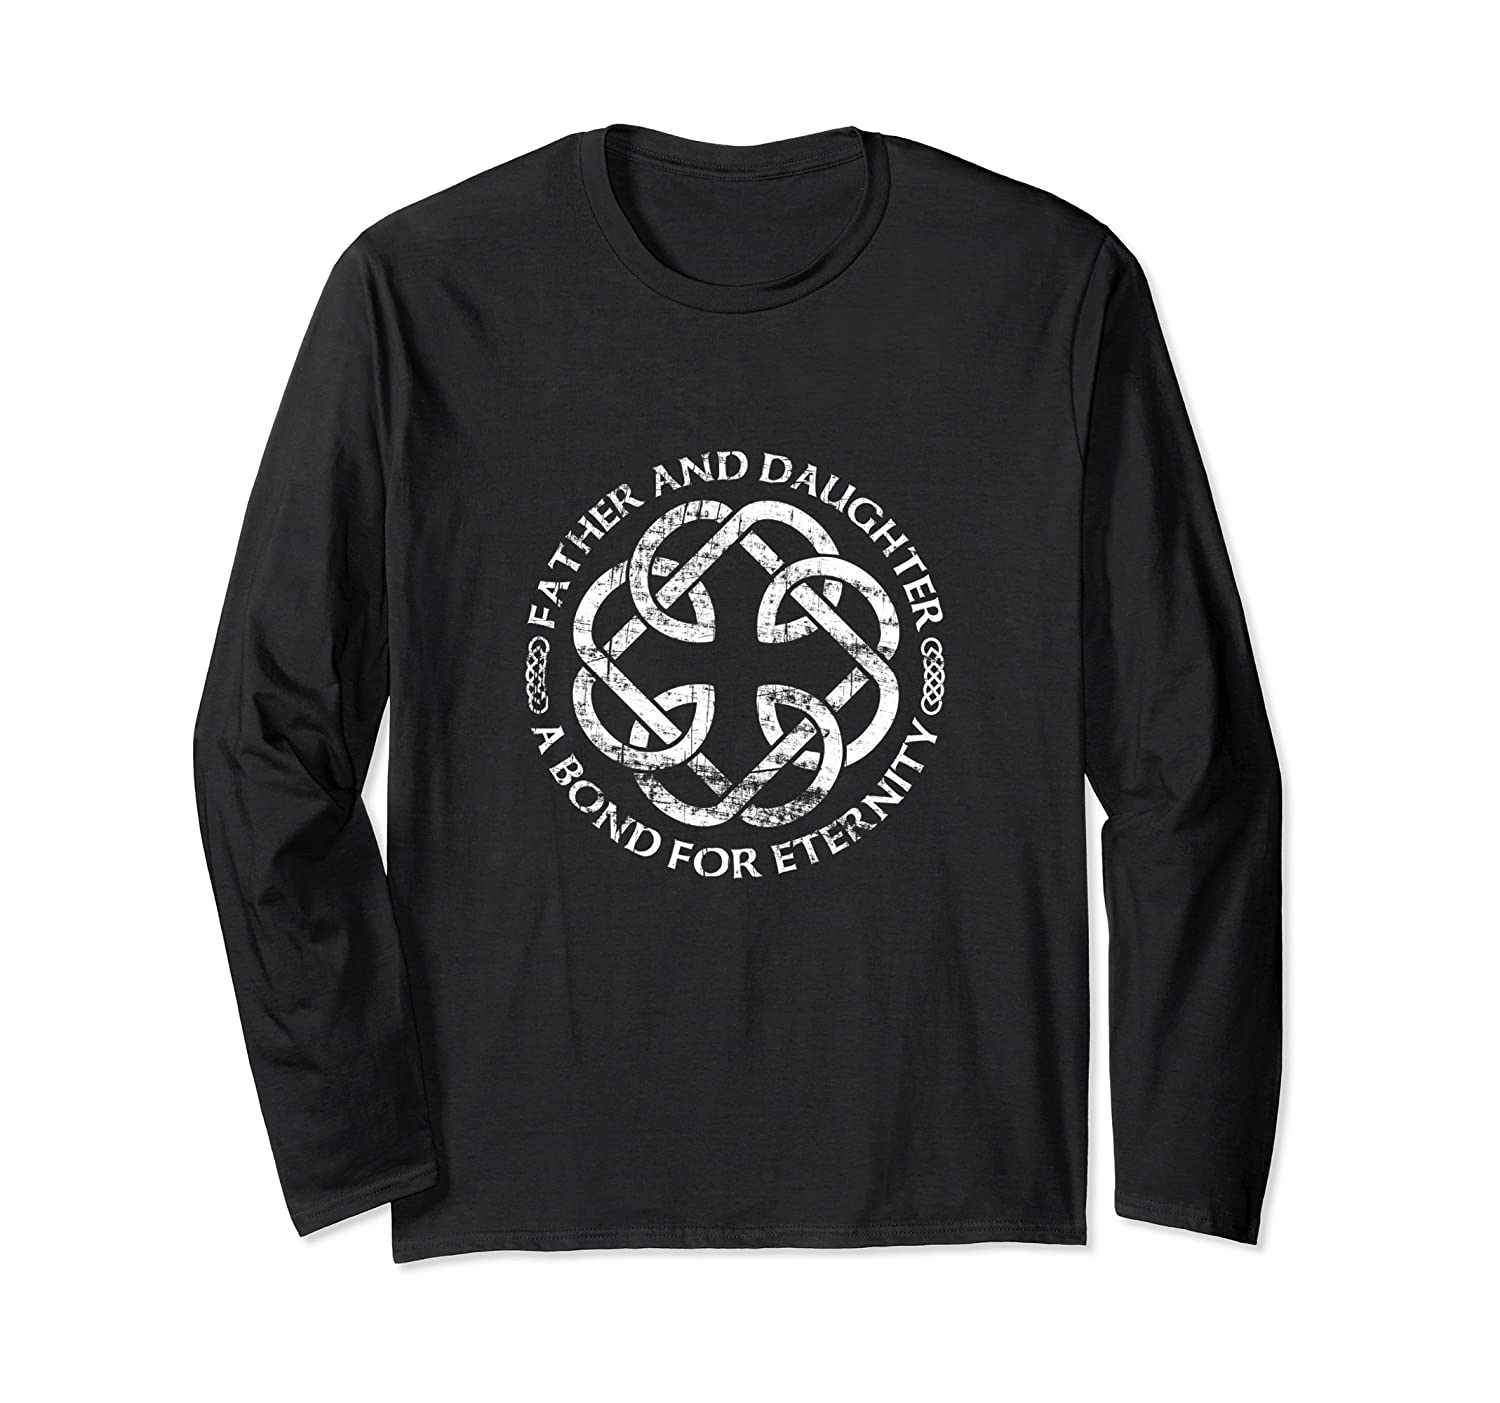 Amazon celtic knot father and daughter a bond for eternity gift amazon celtic knot father and daughter a bond for eternity gift tee clothing biocorpaavc Images